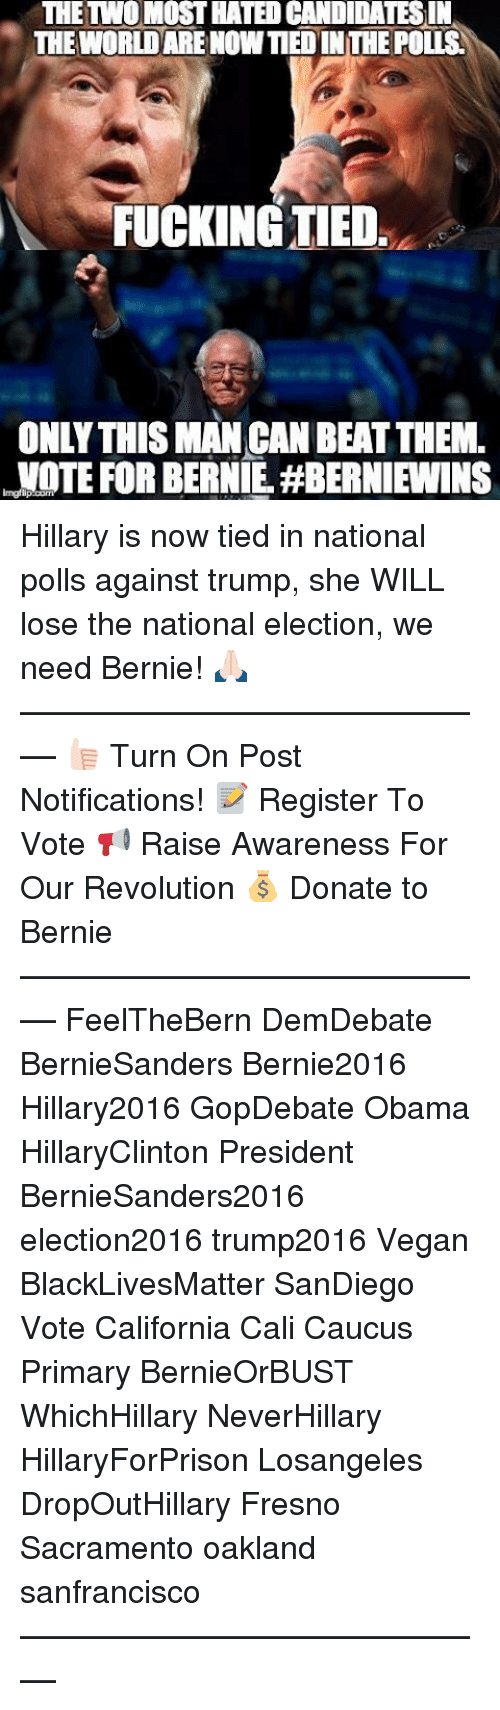 caucuses: THE TWO MOST HATEDCANDIDATESIN  THE WORLDARENOWTIED INTHE POLIS  FUCKING TIED  ONLY THIS MANCAN BEAT THEM.  NOTE FOR BERNIE HBERNIEWINS Hillary is now tied in national polls against trump, she WILL lose the national election, we need Bernie! 🙏🏻 ––––––––––––––––––––––––––– 👍🏻 Turn On Post Notifications! 📝 Register To Vote 📢 Raise Awareness For Our Revolution 💰 Donate to Bernie ––––––––––––––––––––––––––– FeelTheBern DemDebate BernieSanders Bernie2016 Hillary2016 GopDebate Obama HillaryClinton President BernieSanders2016 election2016 trump2016 Vegan BlackLivesMatter SanDiego Vote California Cali Caucus Primary BernieOrBUST WhichHillary NeverHillary HillaryForPrison Losangeles DropOutHillary Fresno Sacramento oakland sanfrancisco –––––––––––––––––––––––––––